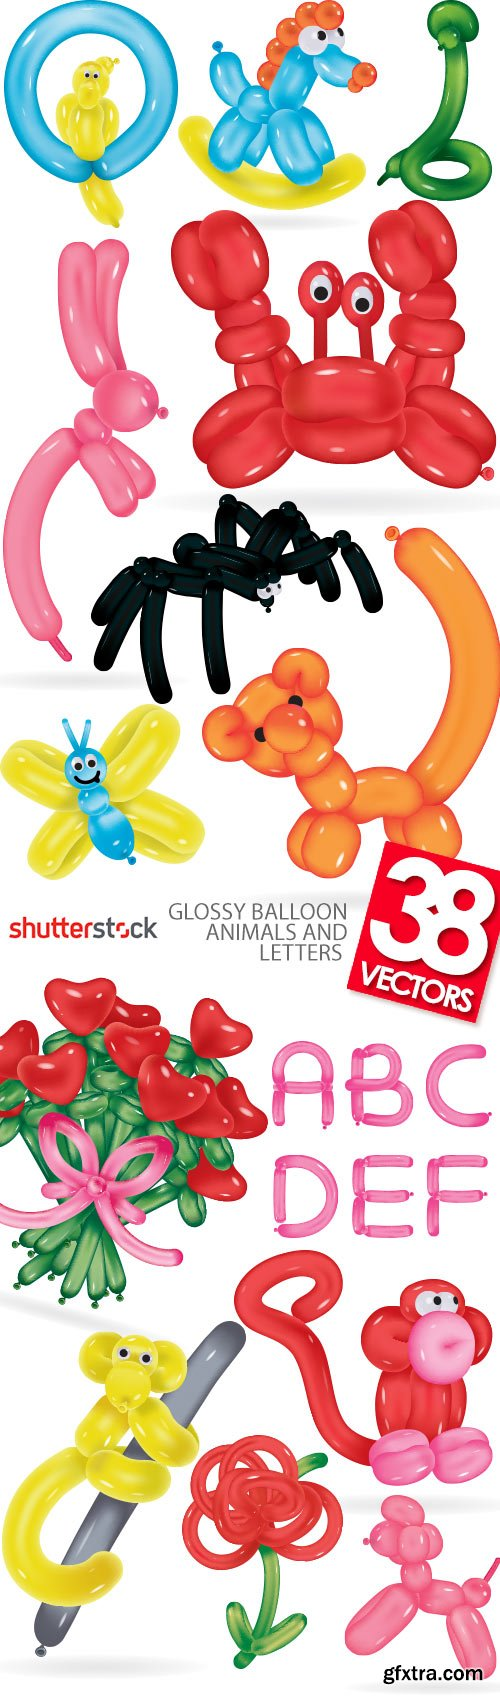 Glossy Balloon Animals and Letters 38xEPS